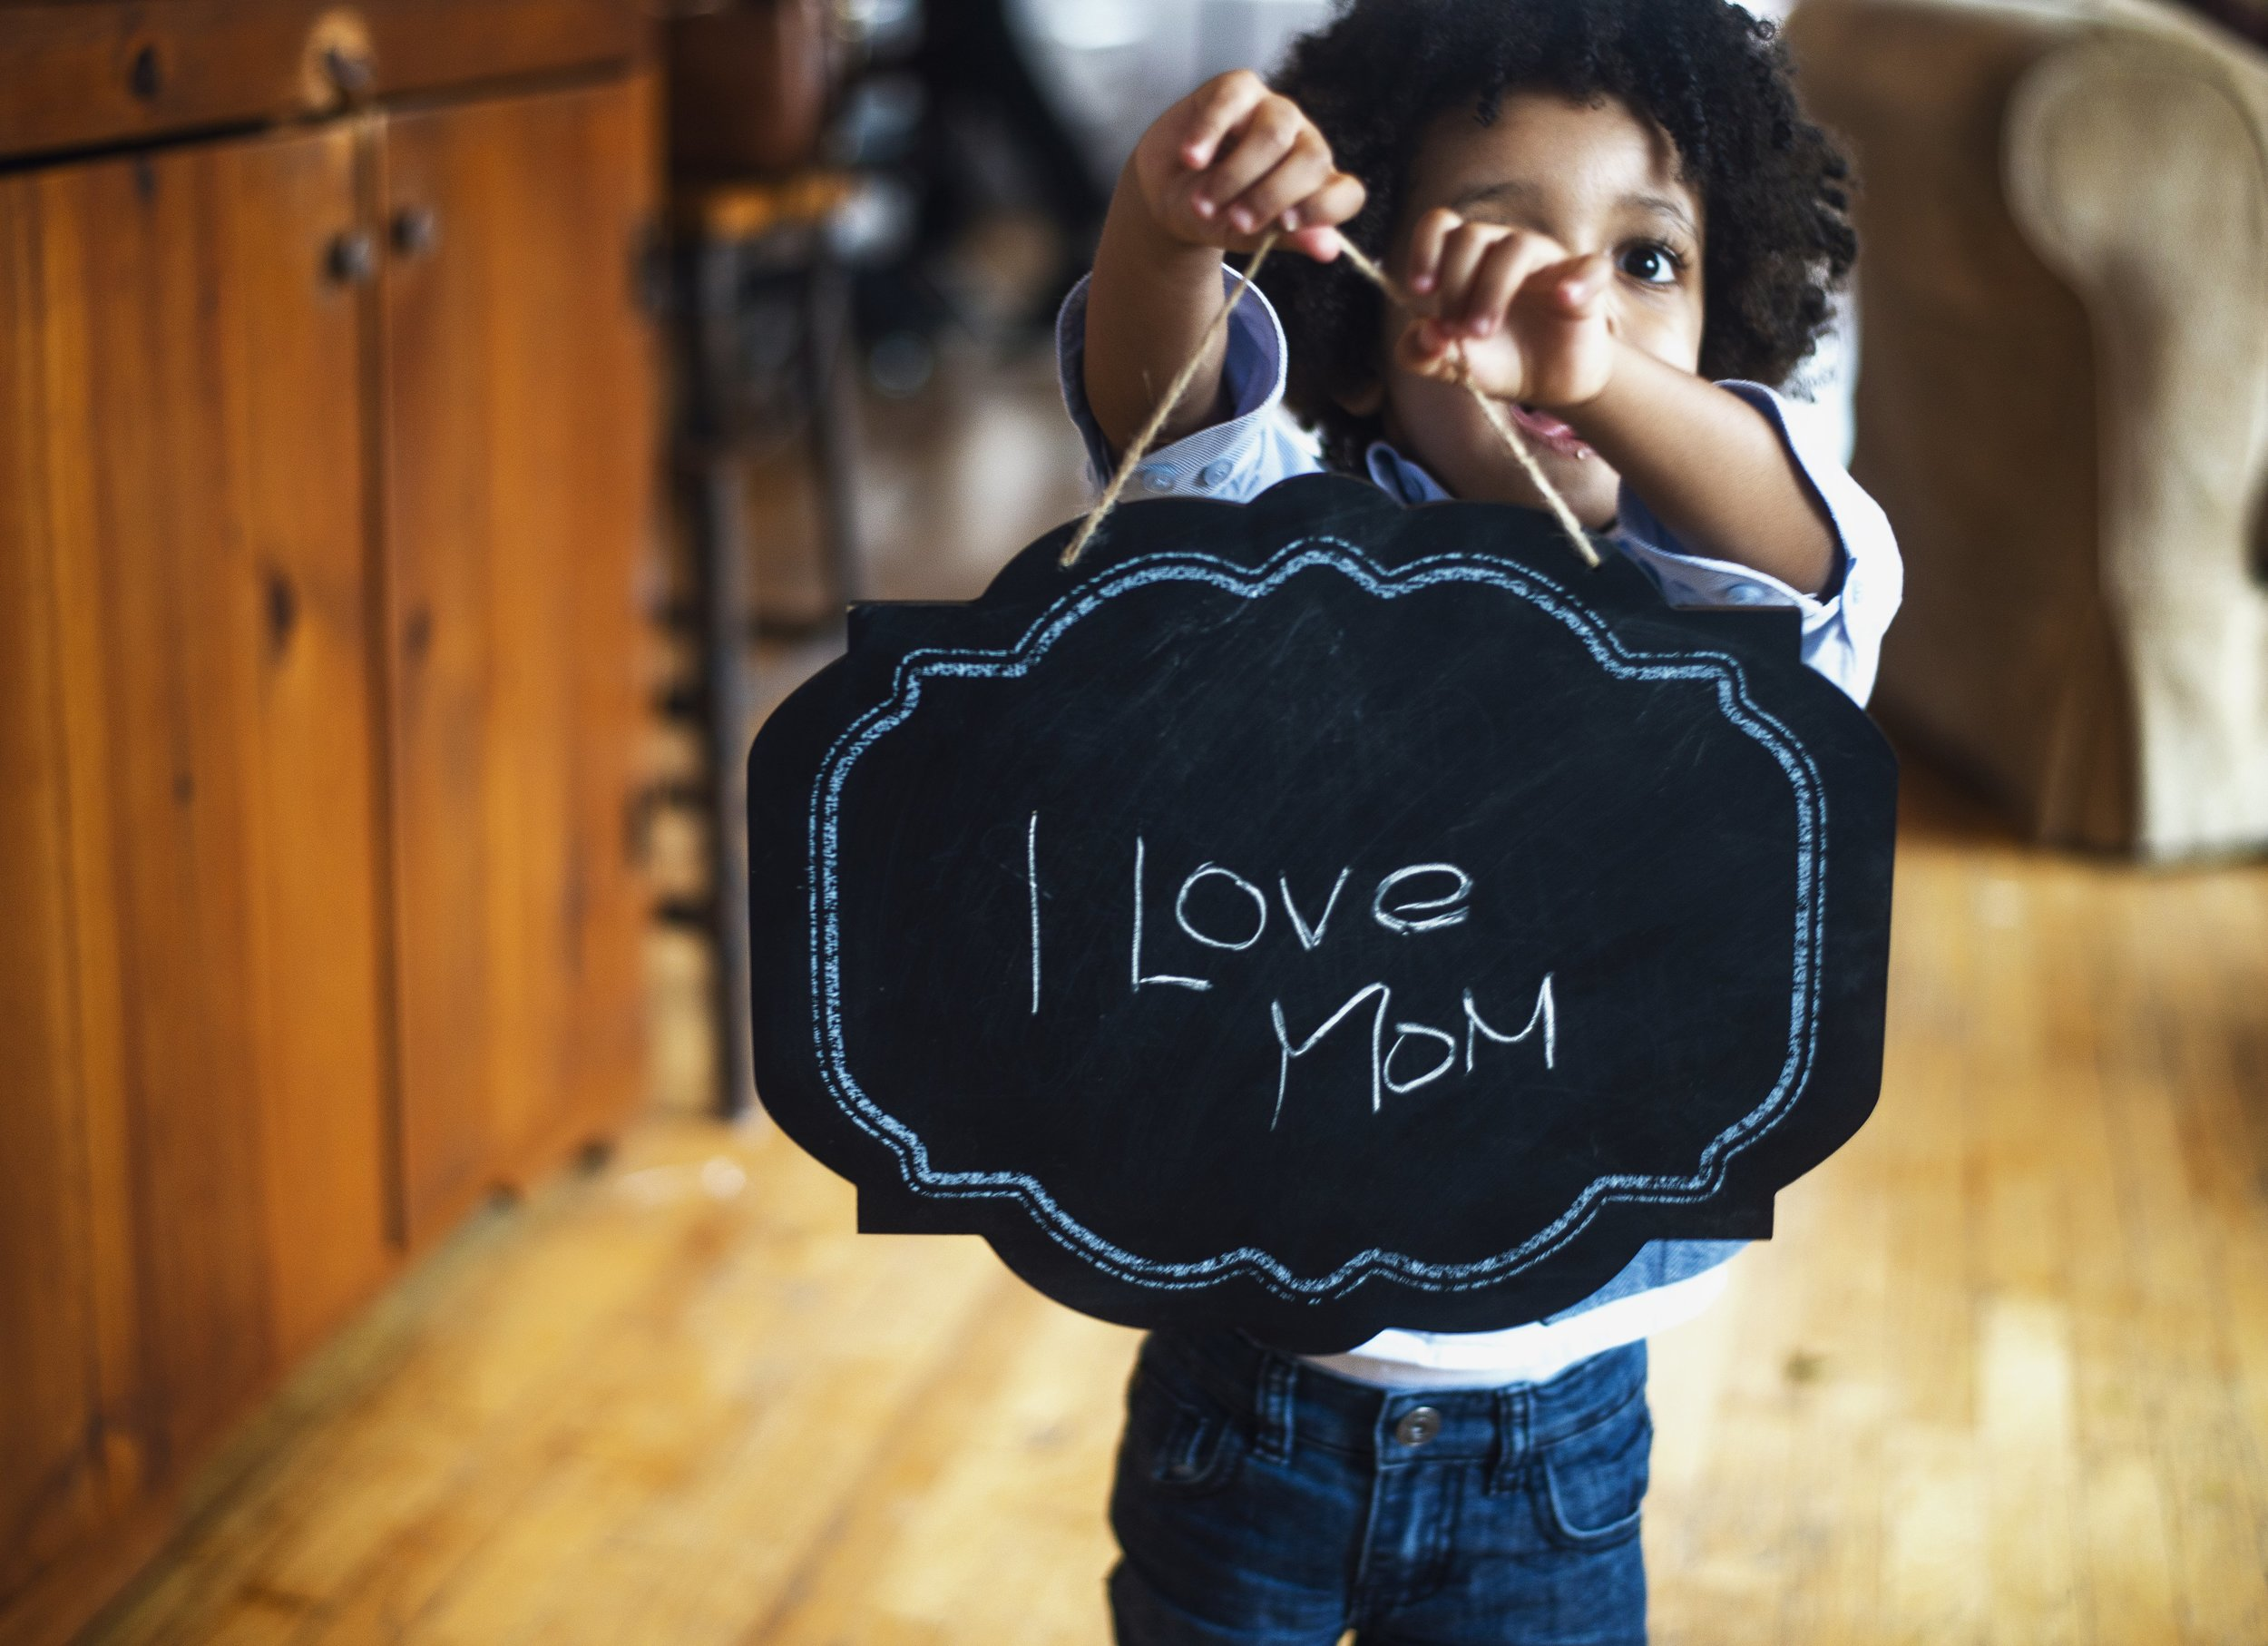 toddler-with-sign-for-mom_4460x4460.jpg